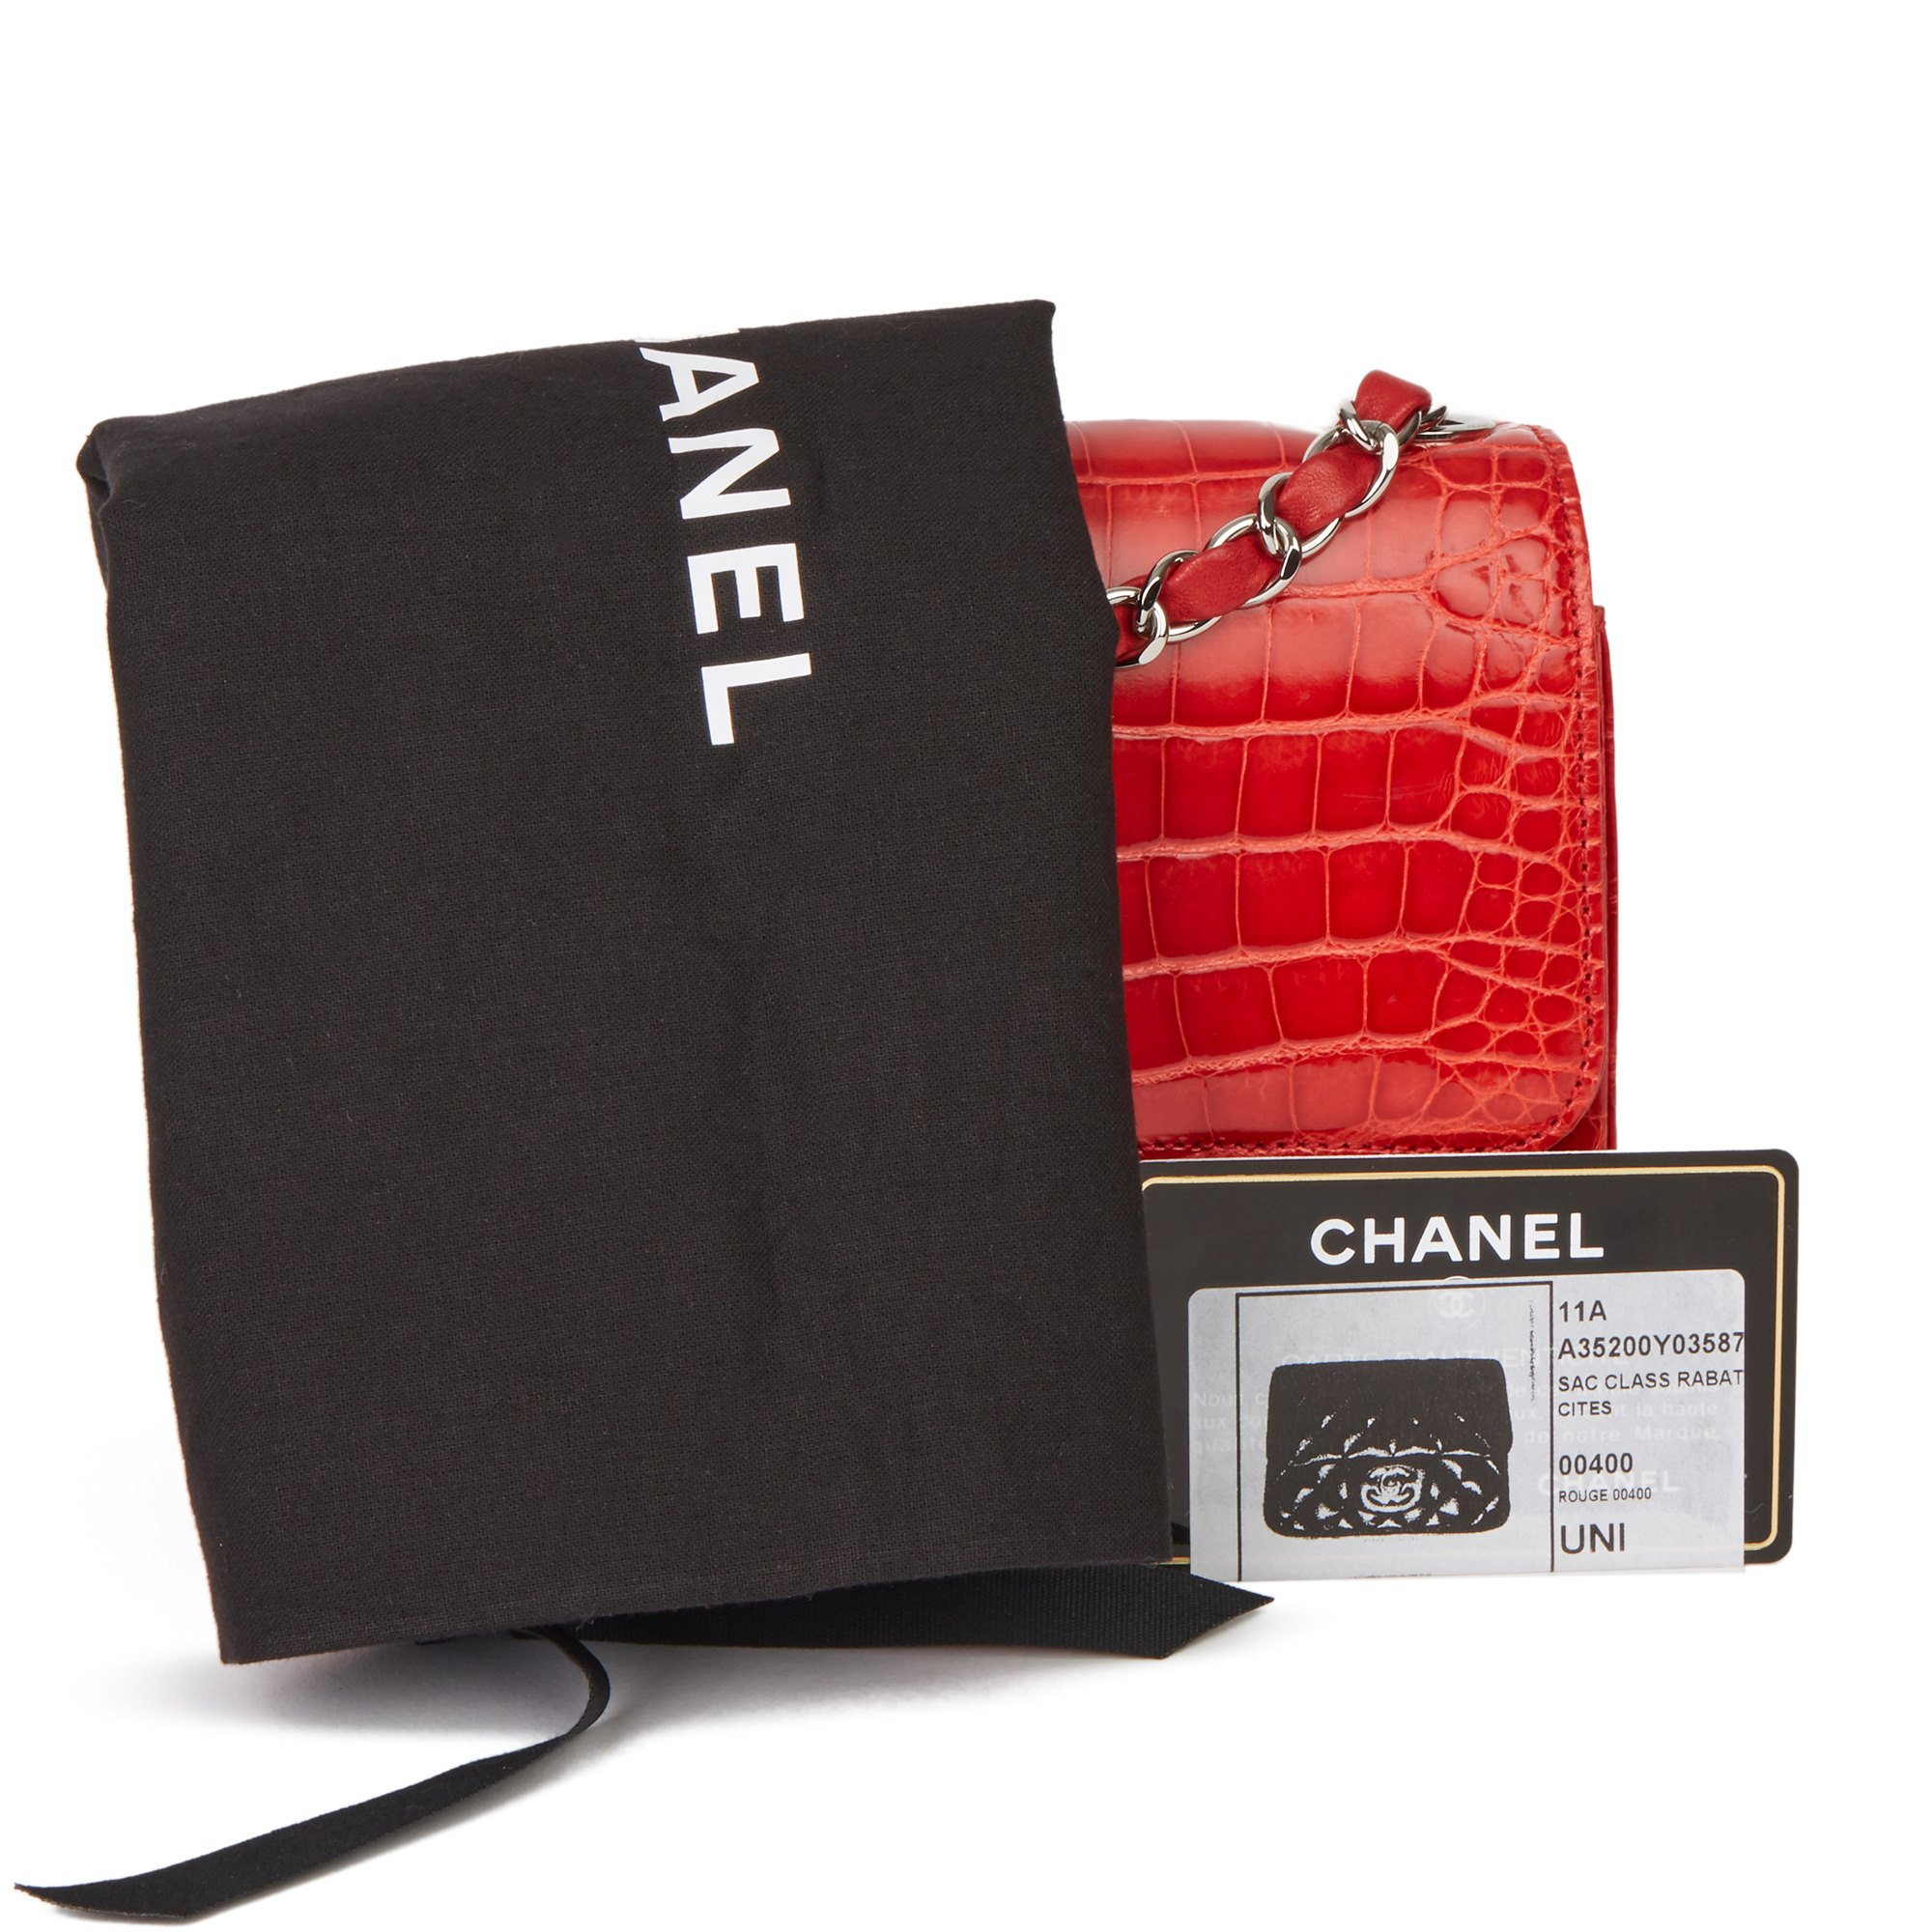 Chanel Red Shiny Mississippiensis Alligator Leather Mini Flap Bag